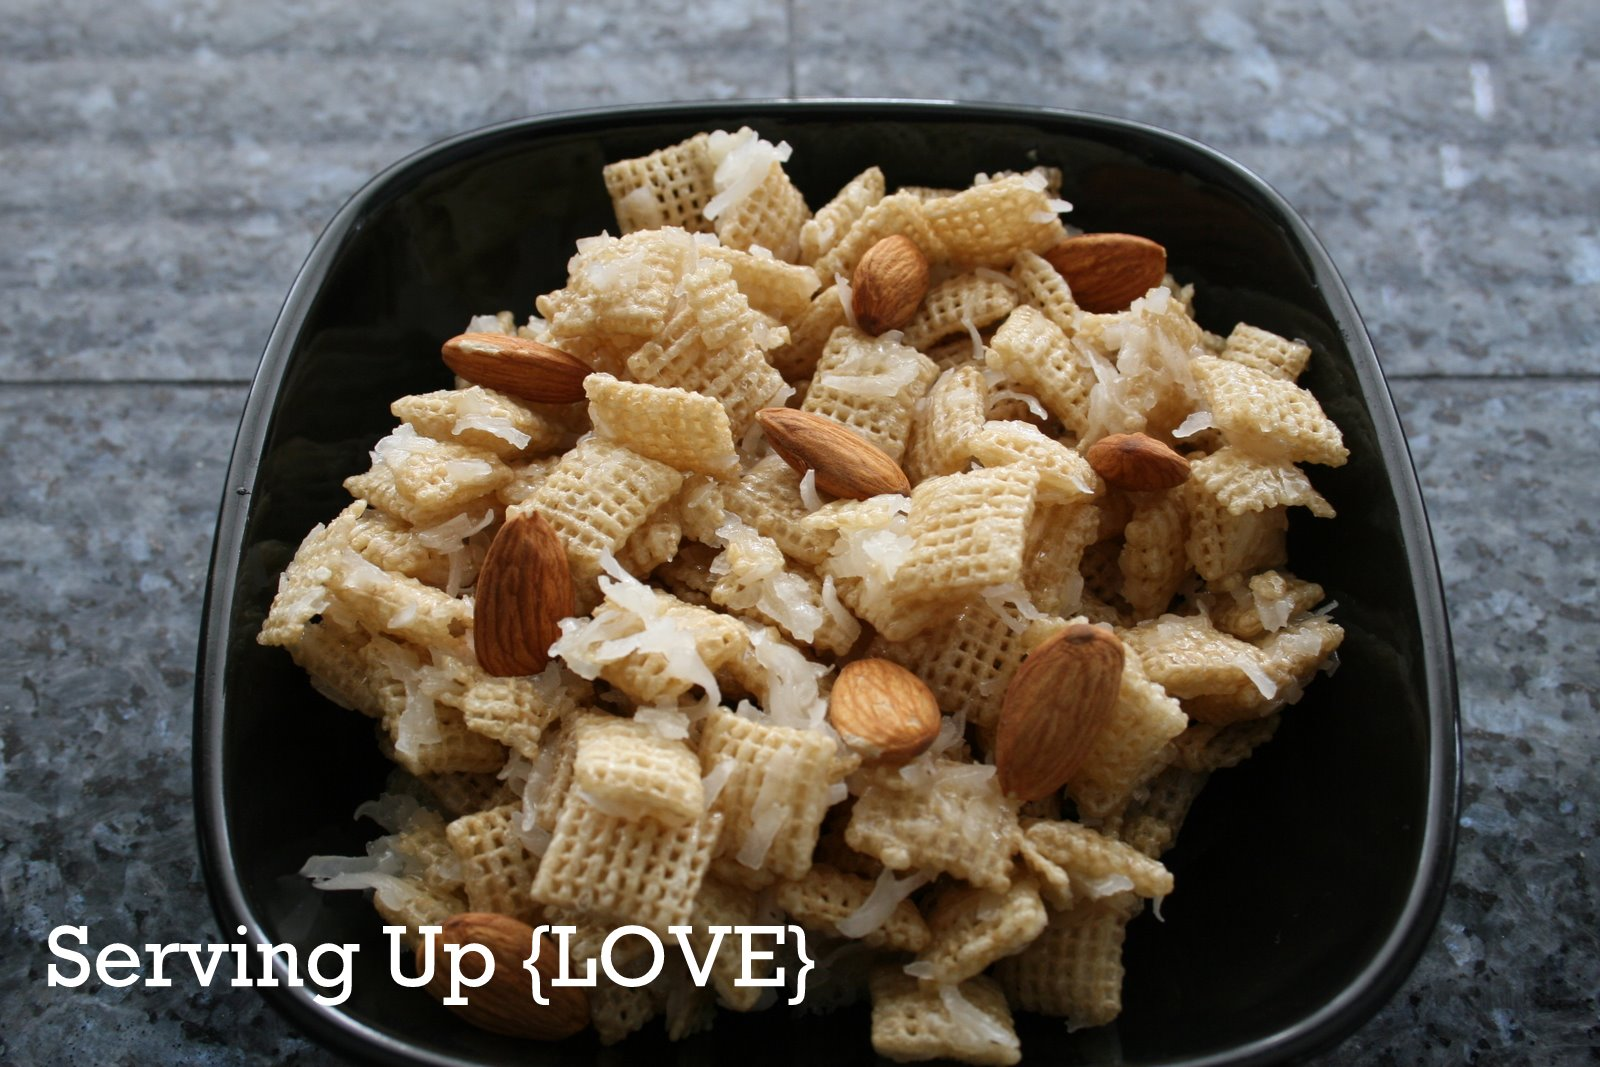 Katherine's Kitchen: Serving Up {Snack}: Coconut Chex Mix